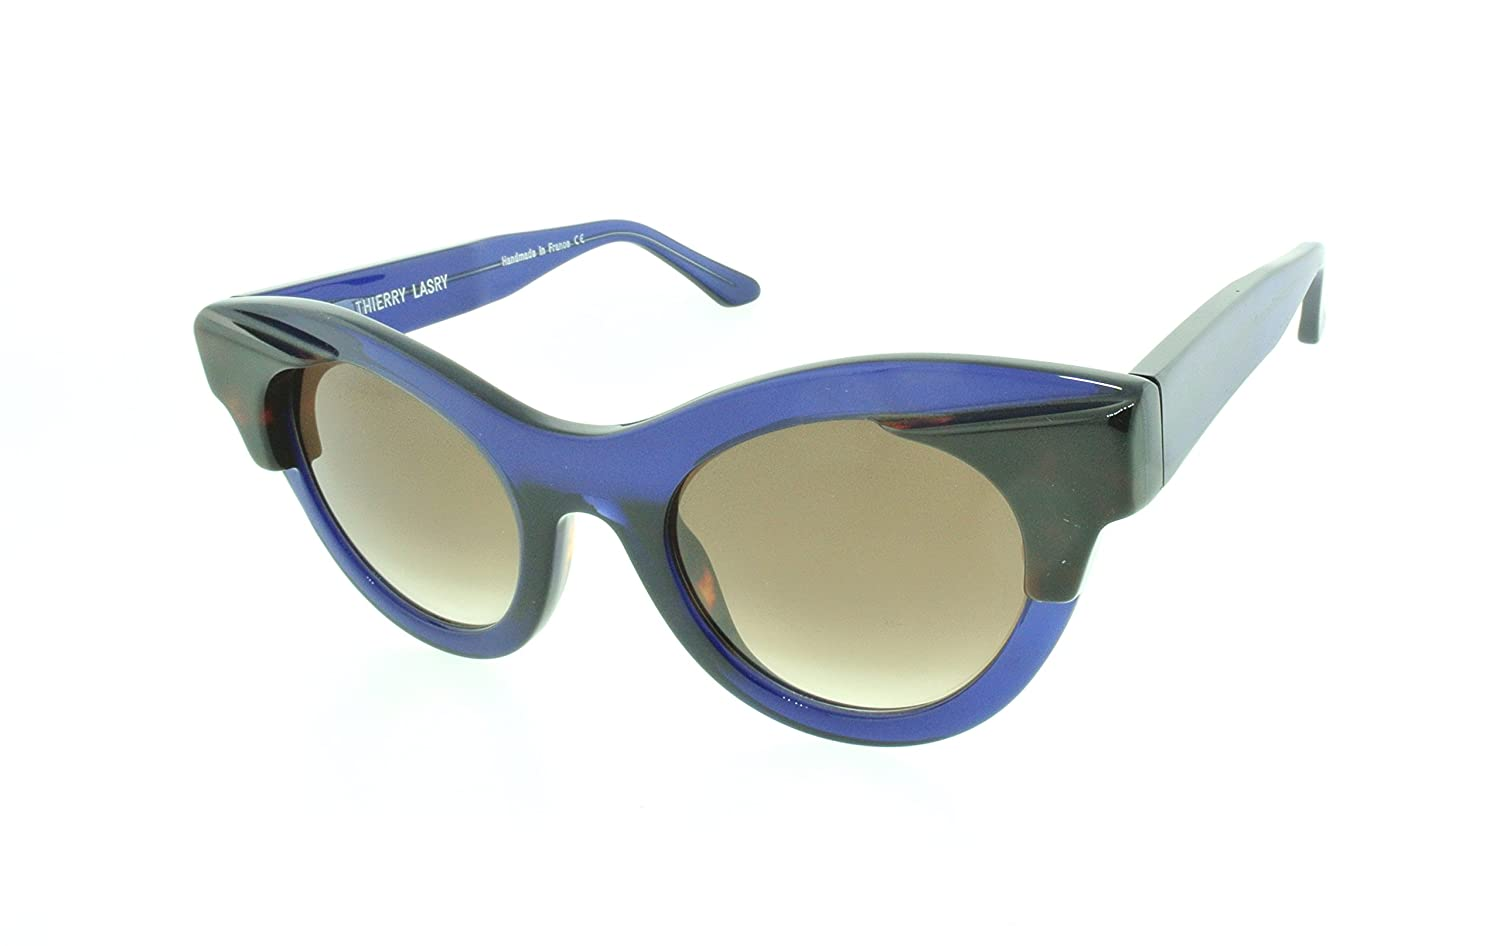 Amazon.com  Thierry Lasry Nymphomany Cat-eye Sunglasses Composite Frames ( Purple, Gradient Grey)  Clothing d403ac9a67c3